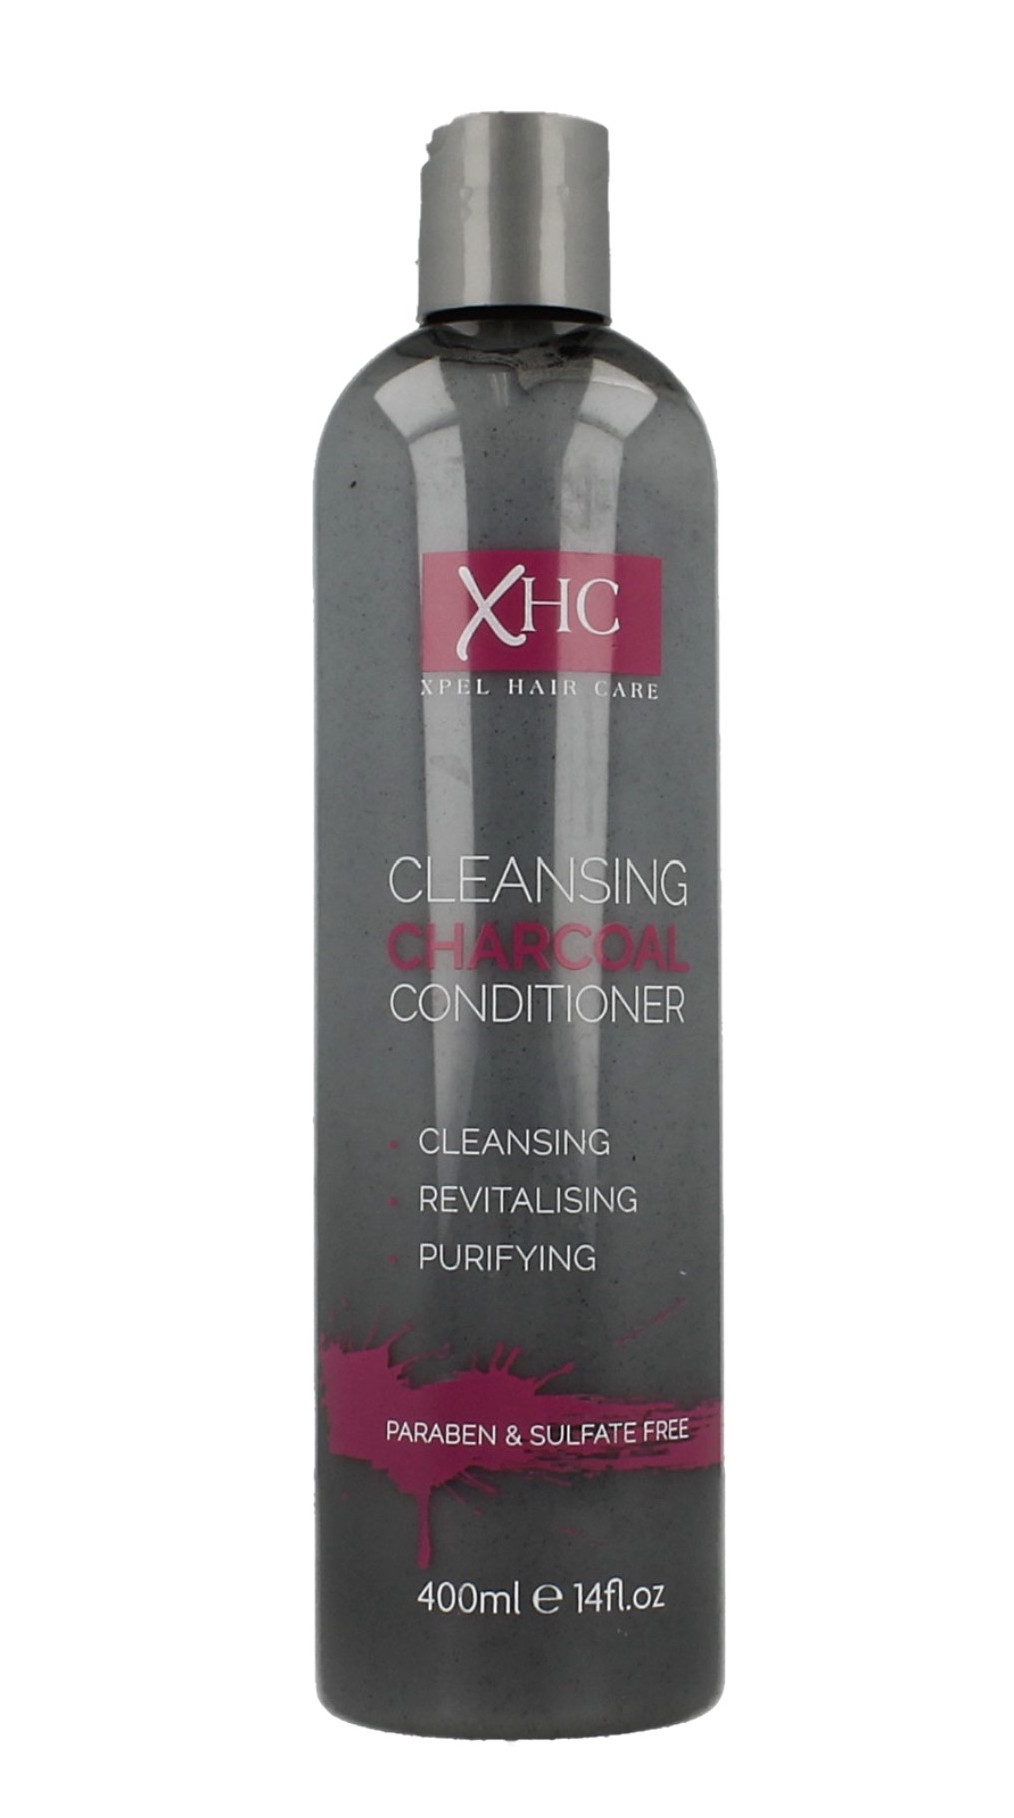 XHC Cleansing Charcoal Conditioner kopen